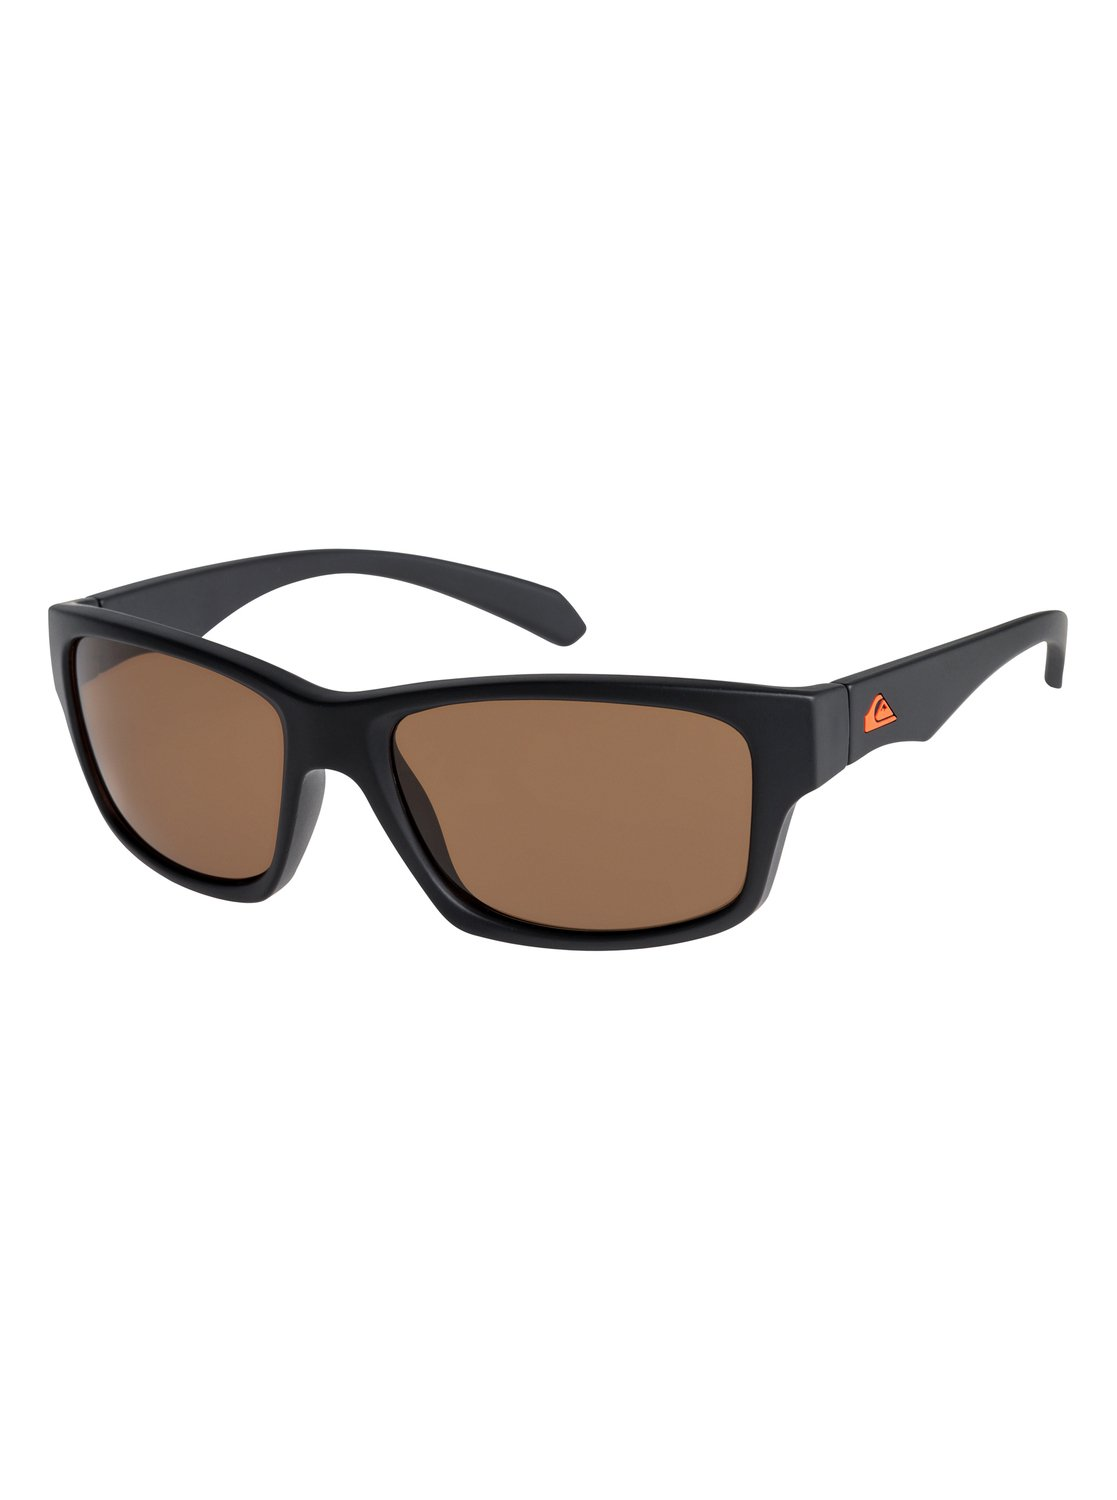 Off Road Polarized Floatable - Sunglasses